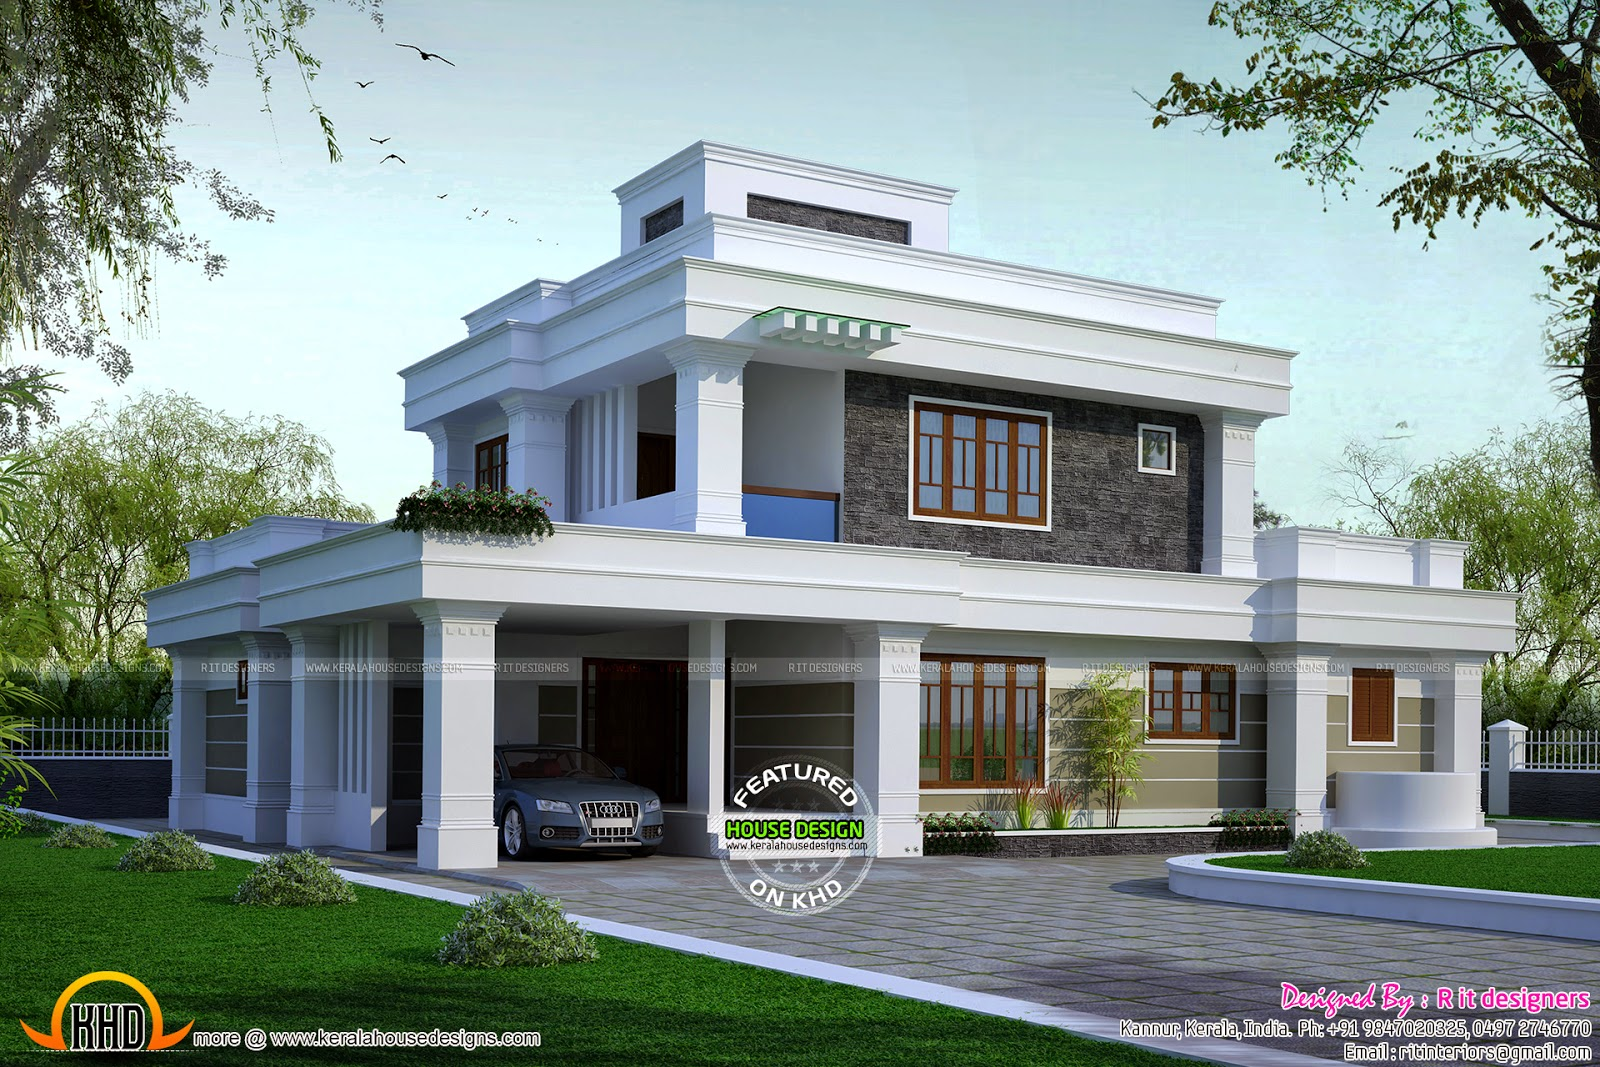 5 BHK flat roof house - Kerala home design and floor plans